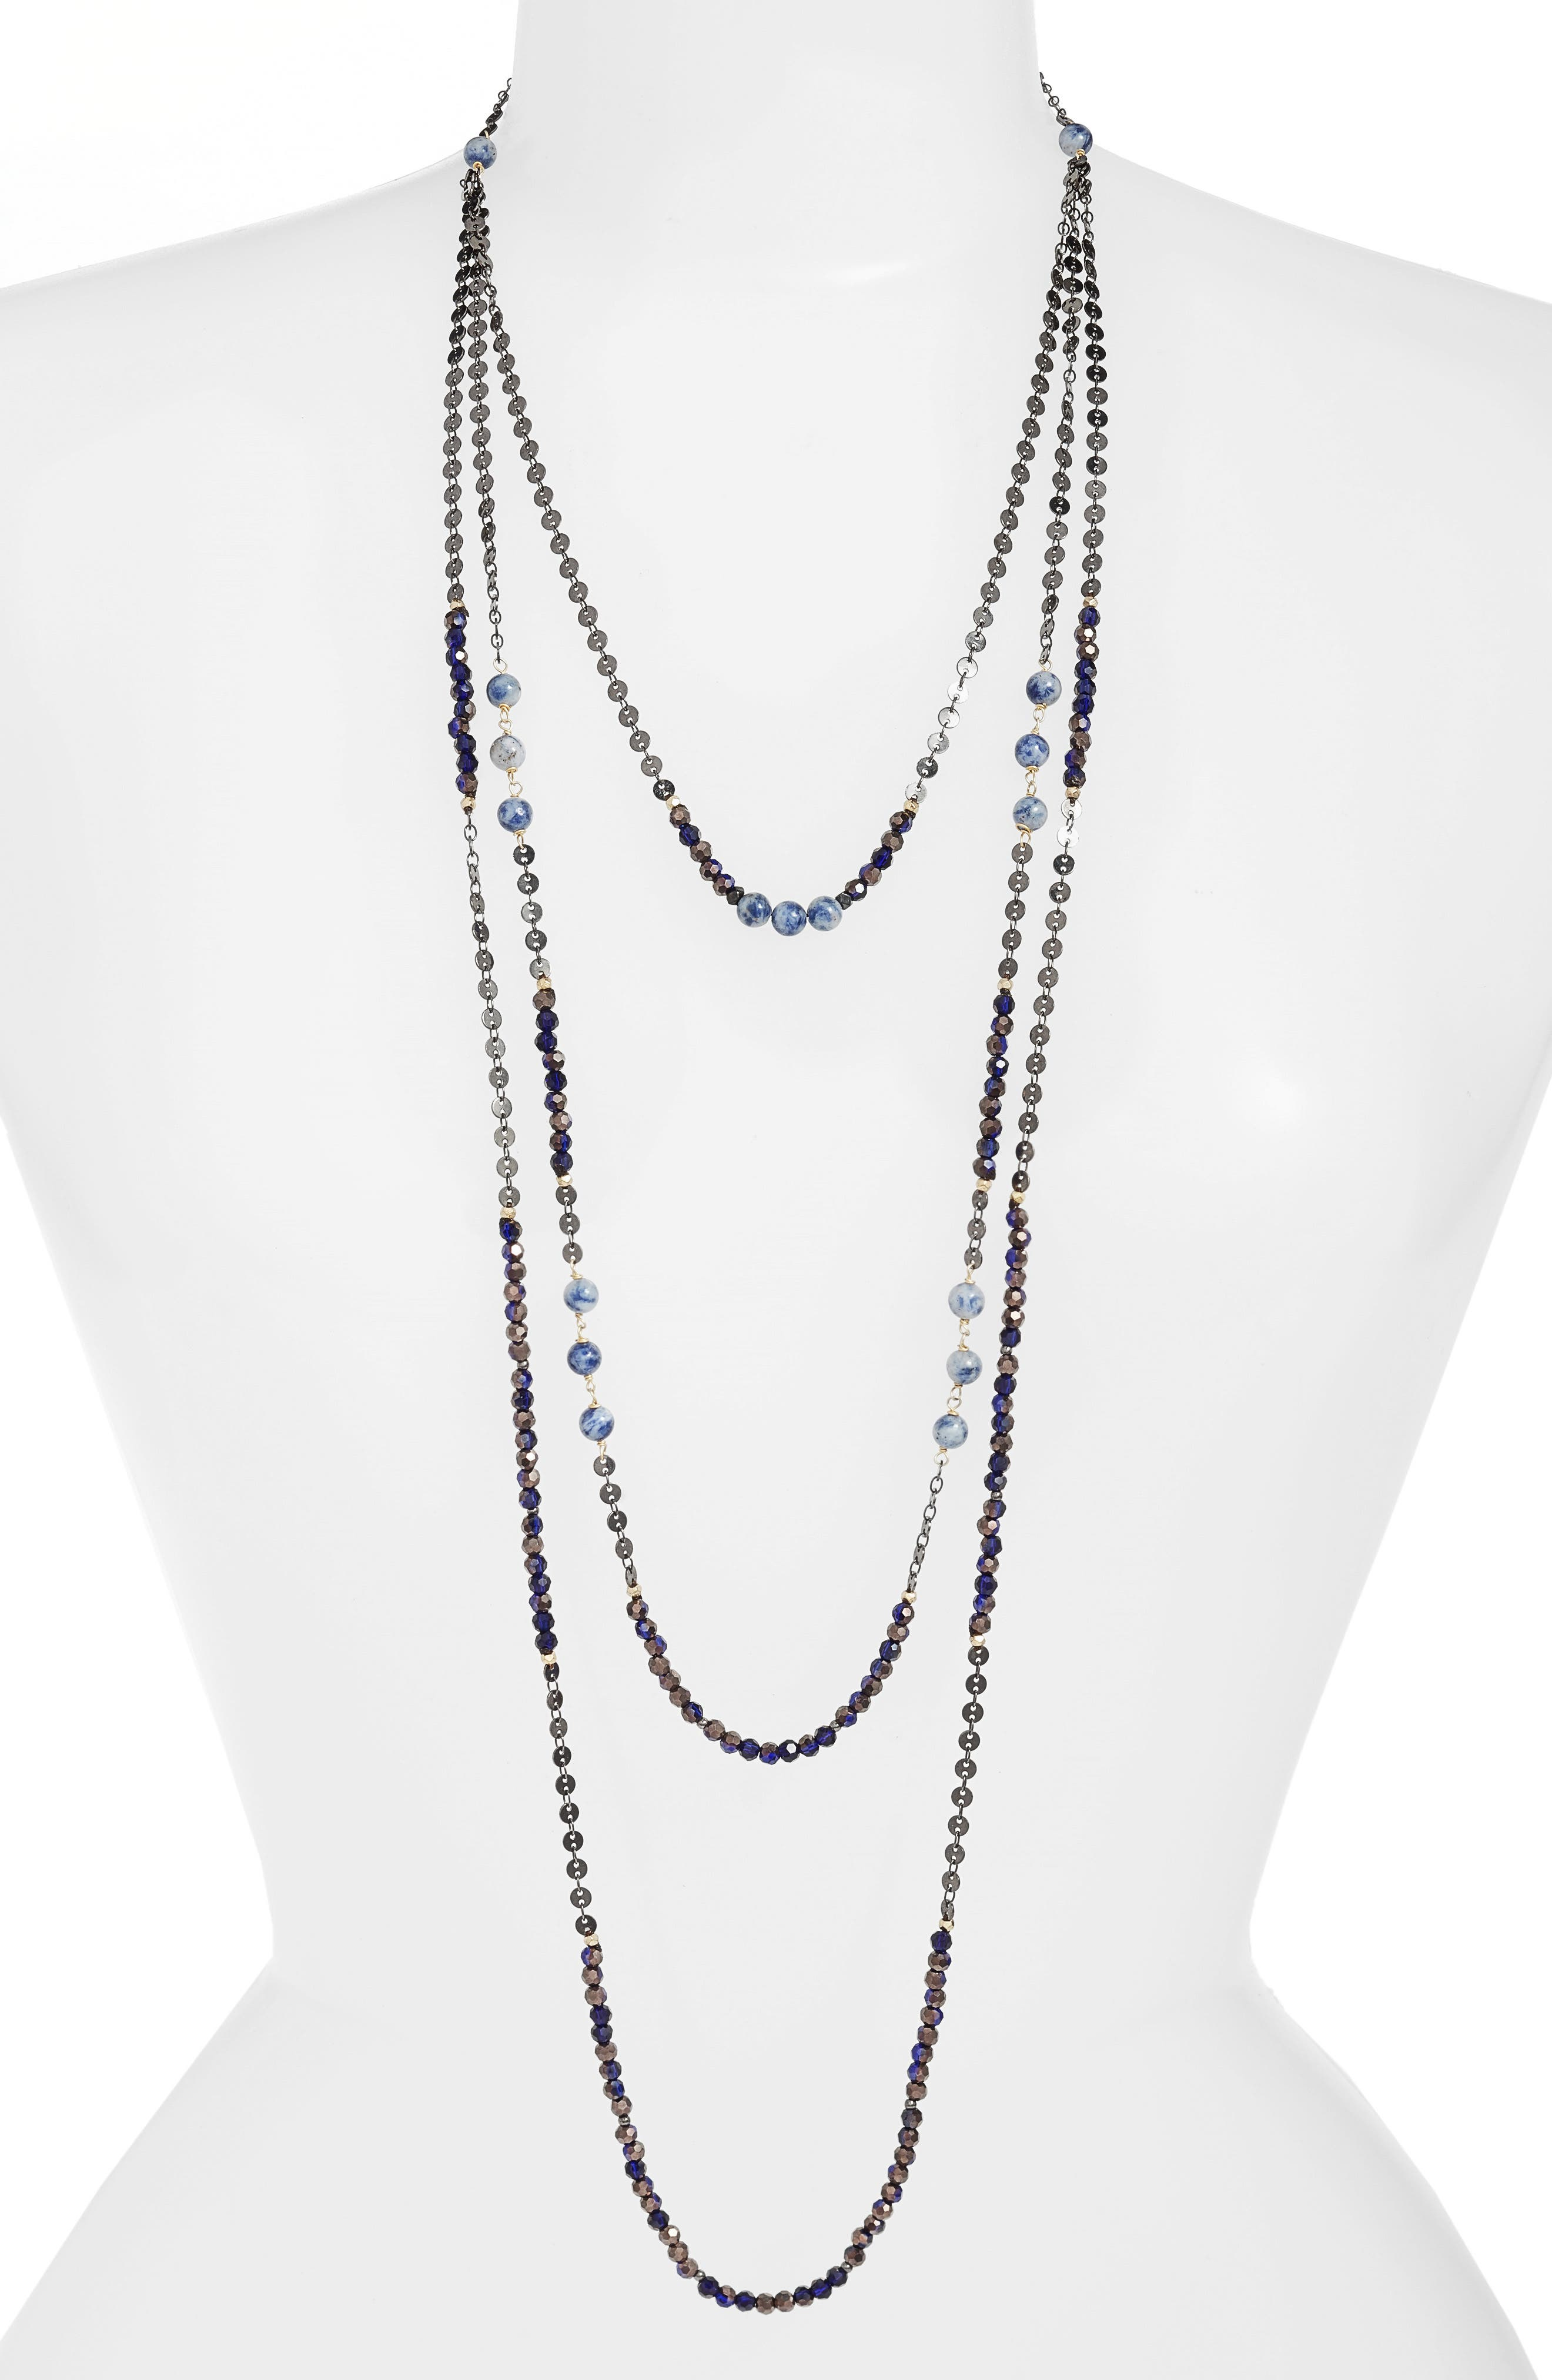 Nakamol Semiprecious Stone Triple Strand Necklace,                             Main thumbnail 1, color,                             Blue